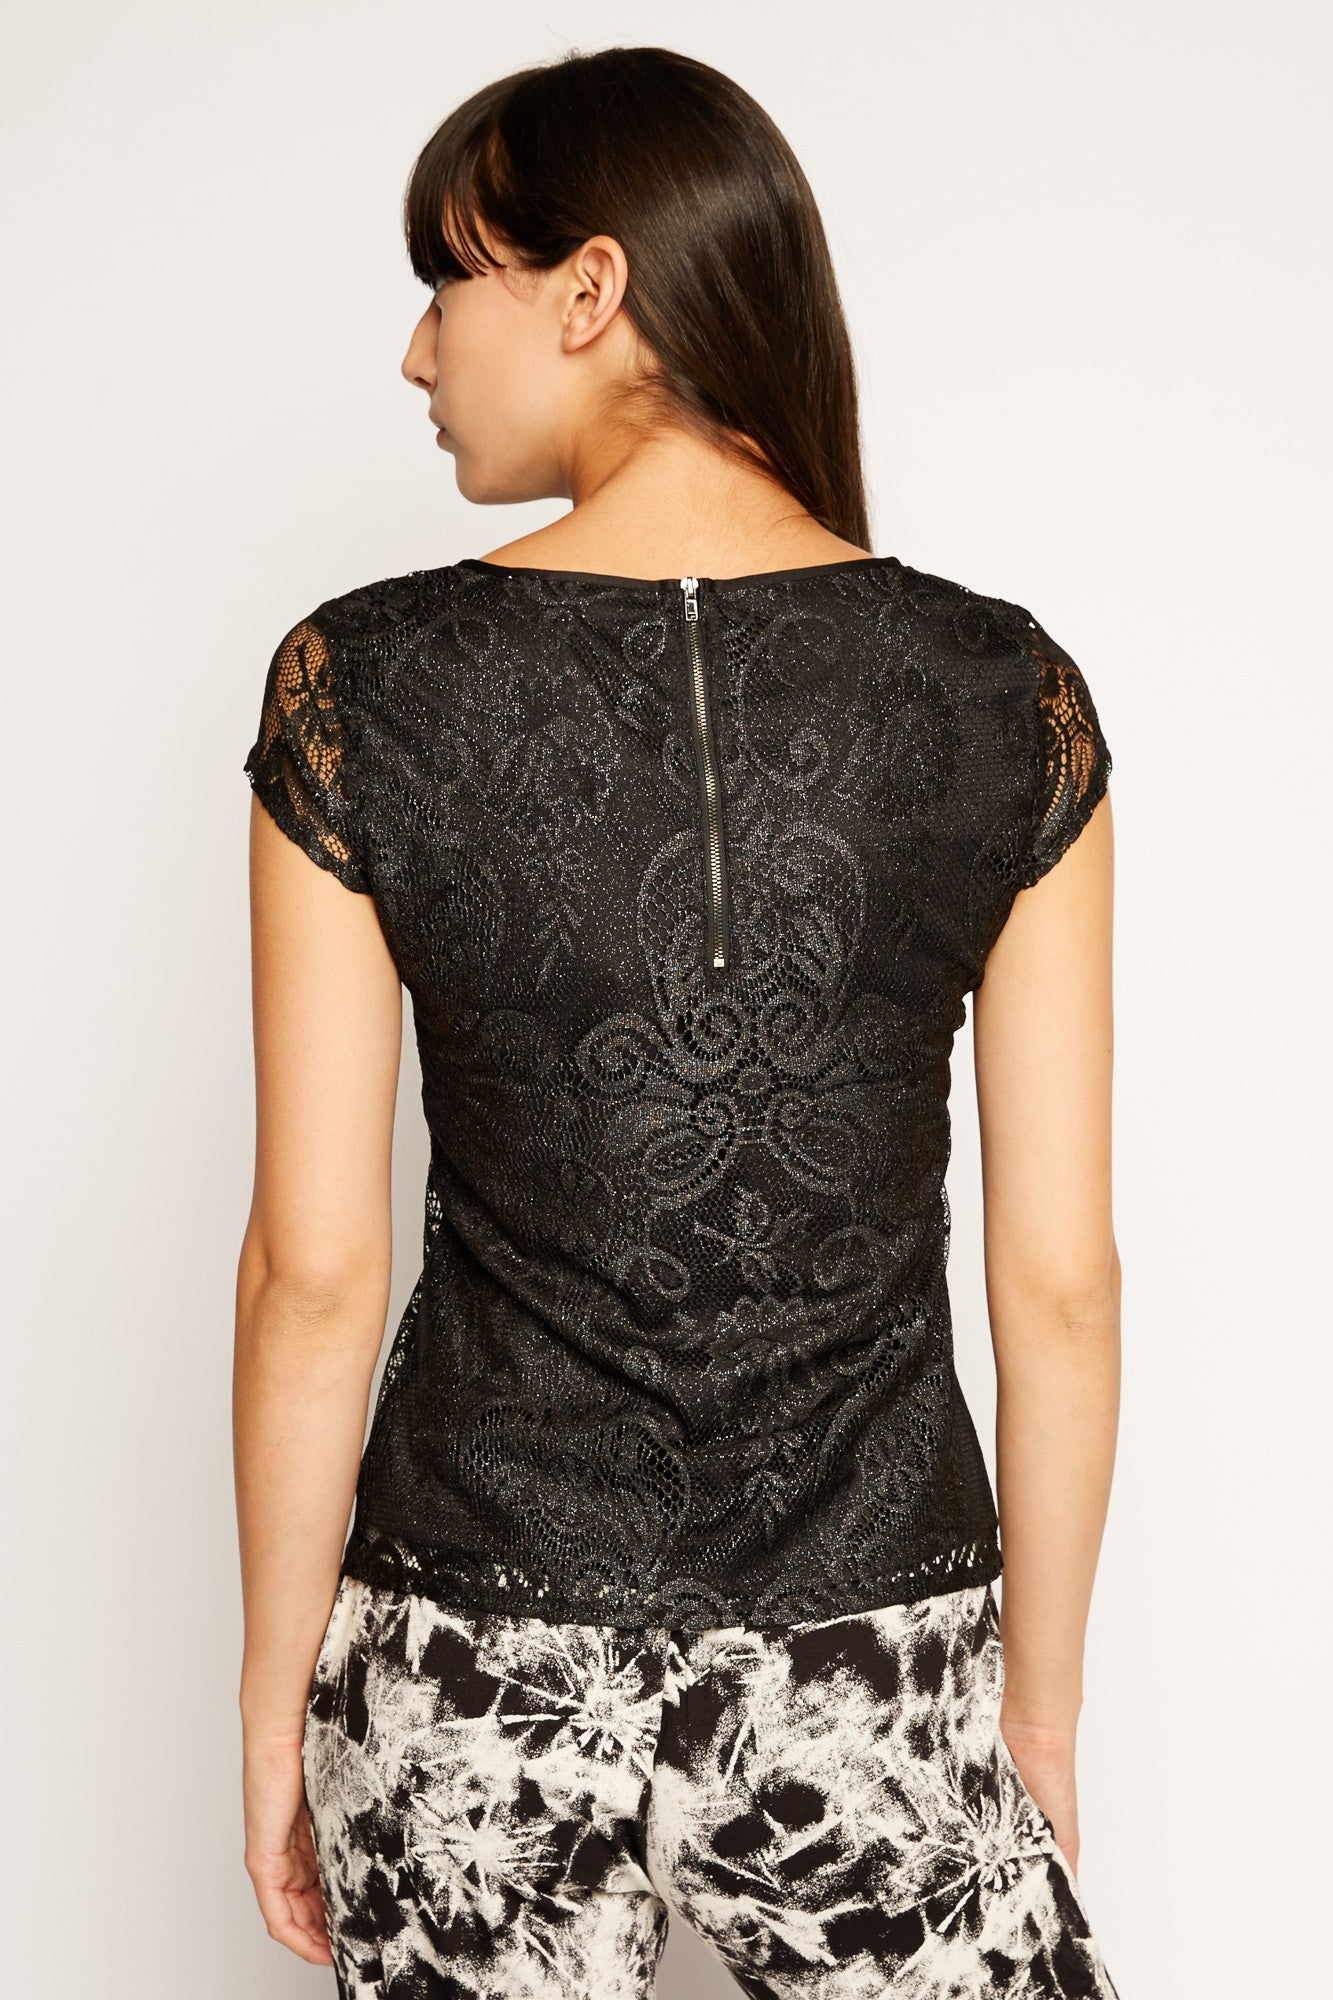 Lace Overlay Top by Peppercon